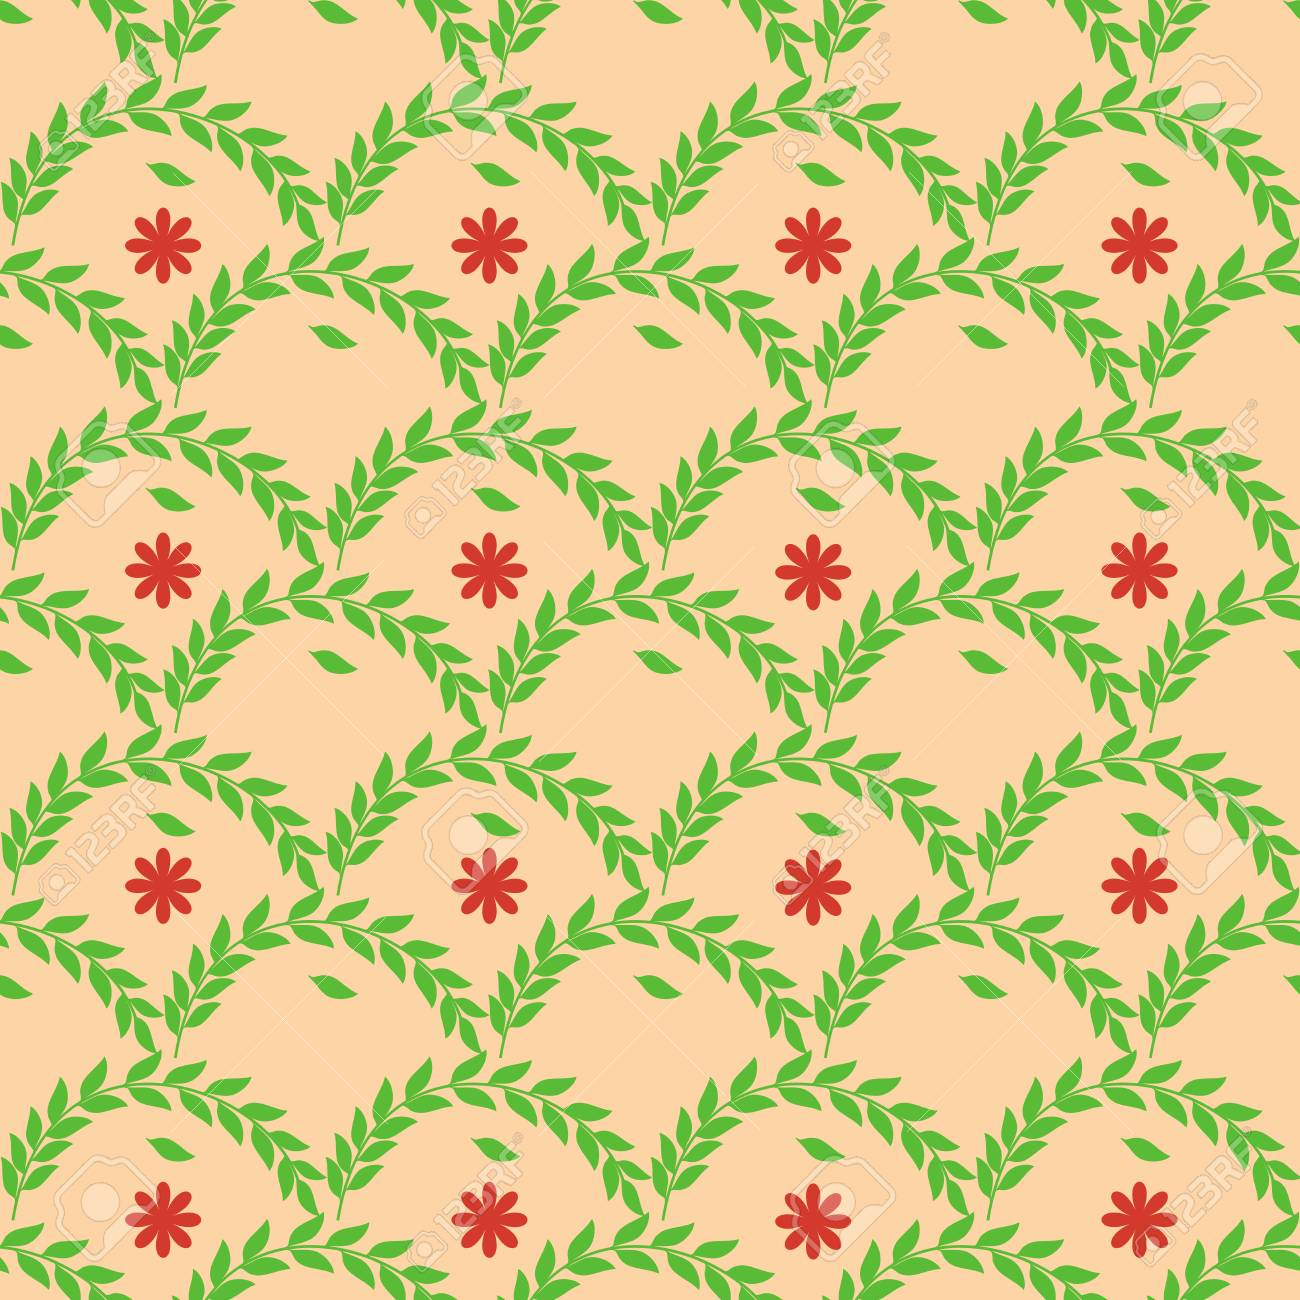 d6a2d1c087a6 Twig and flower seamless pattern. Fashion graphic background..